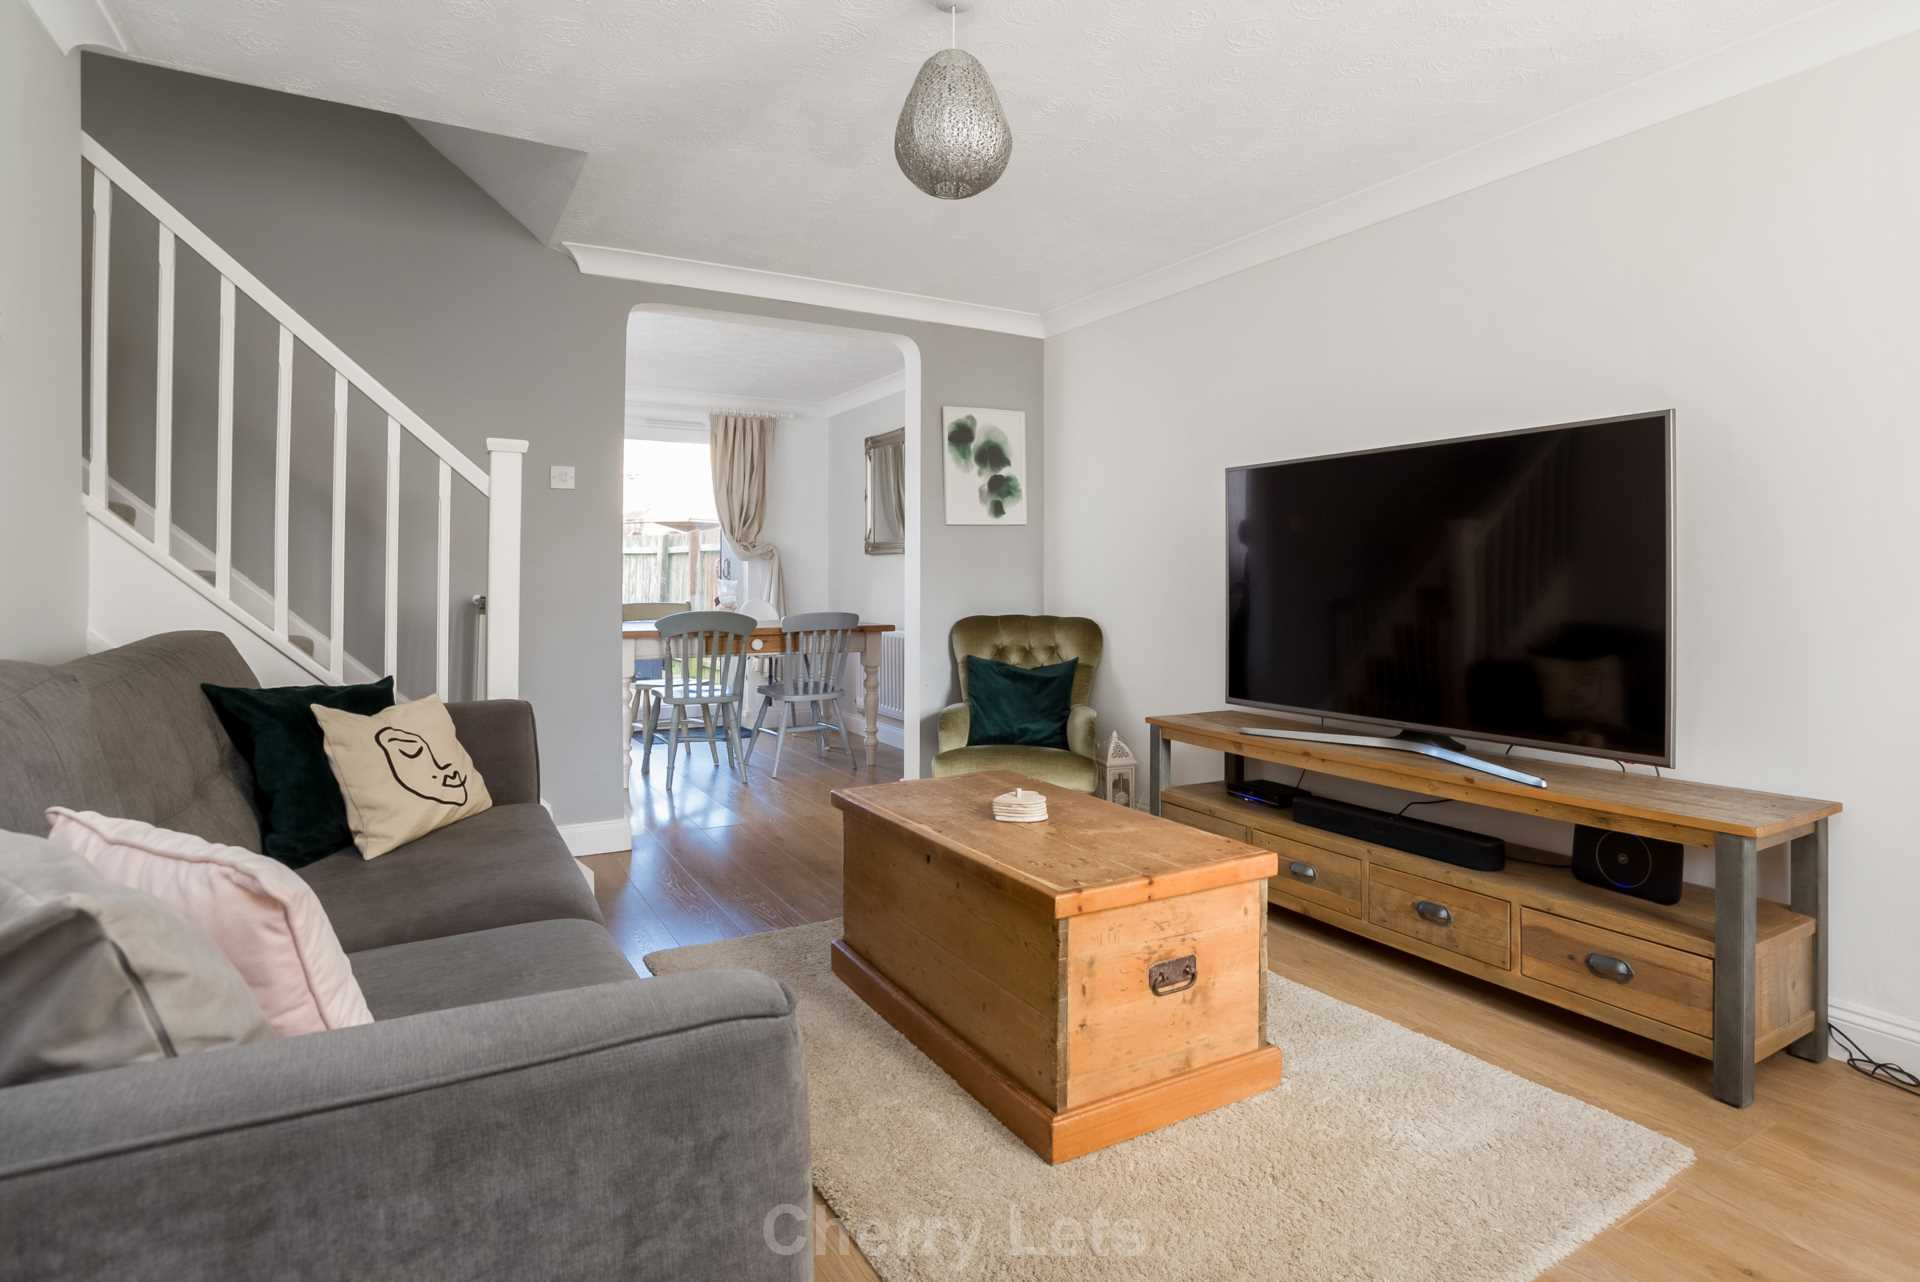 3 bed detached house to rent in Mill Close, Deddington, OX15  - Property Image 5